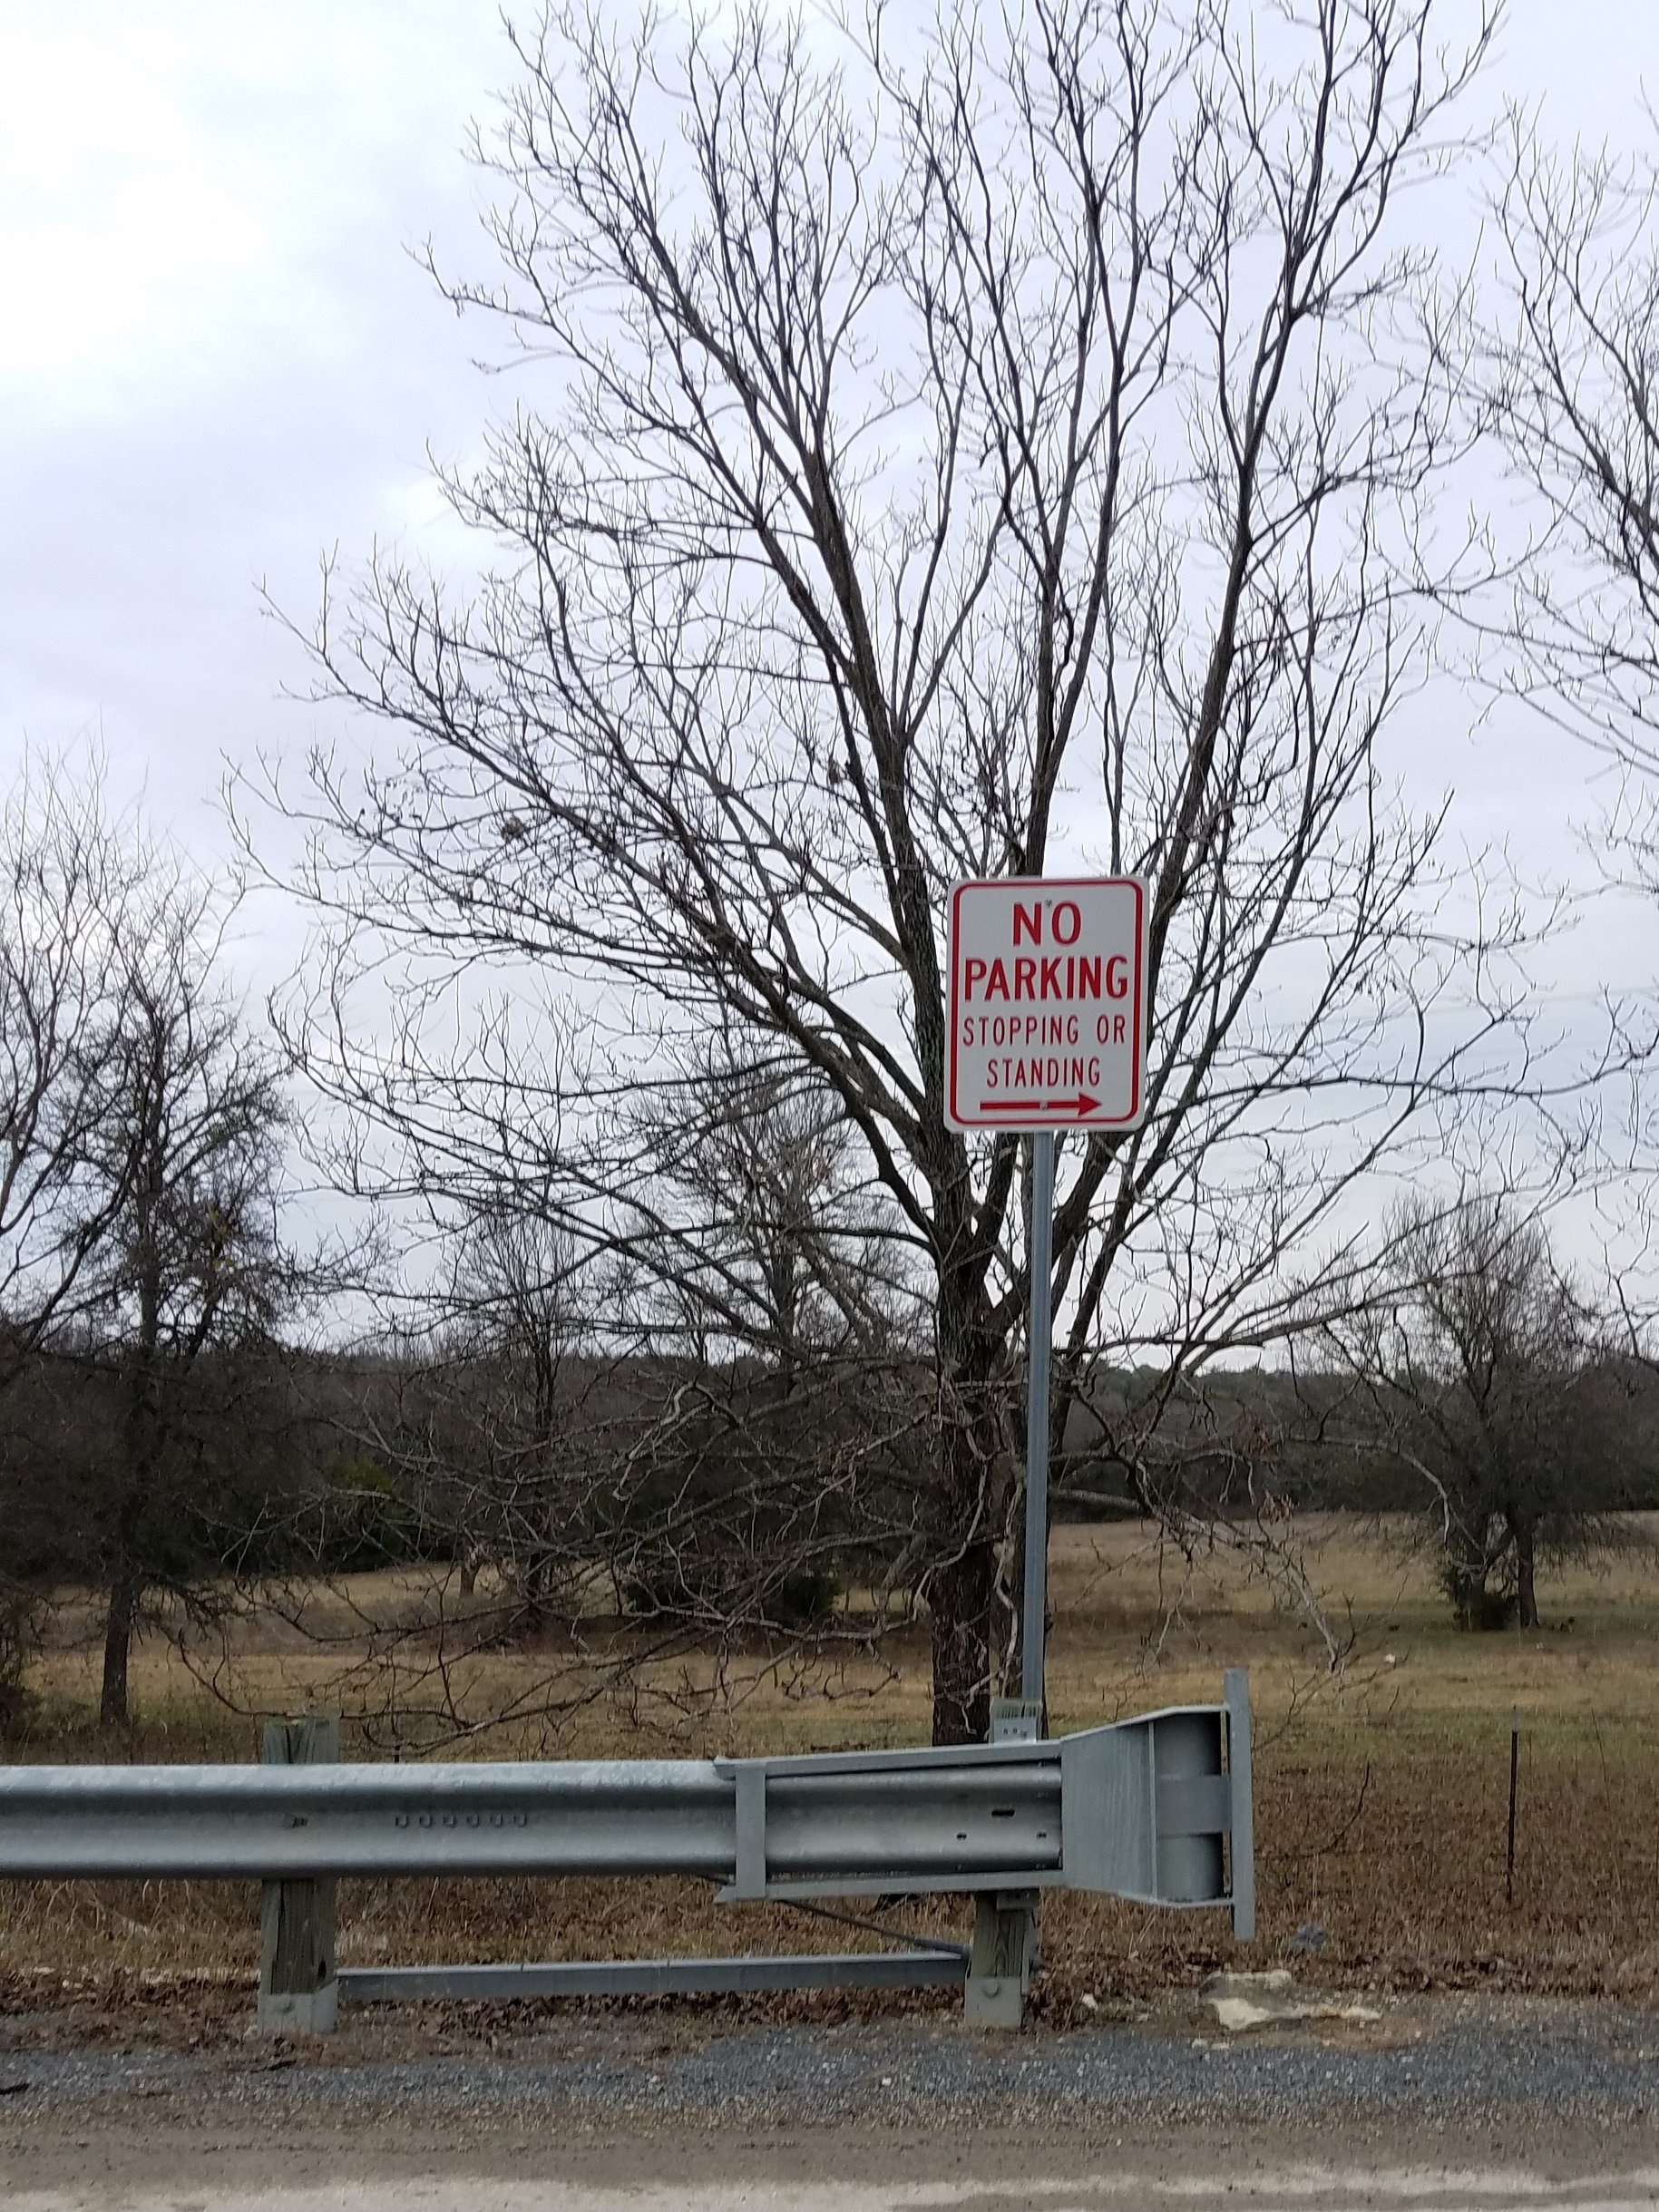 """No Parking"" signs are typically installed by city or county governments (rarely by the Texas Department of Highways), sometimes at the behest of landowners specifically to limit access to navigable waters."